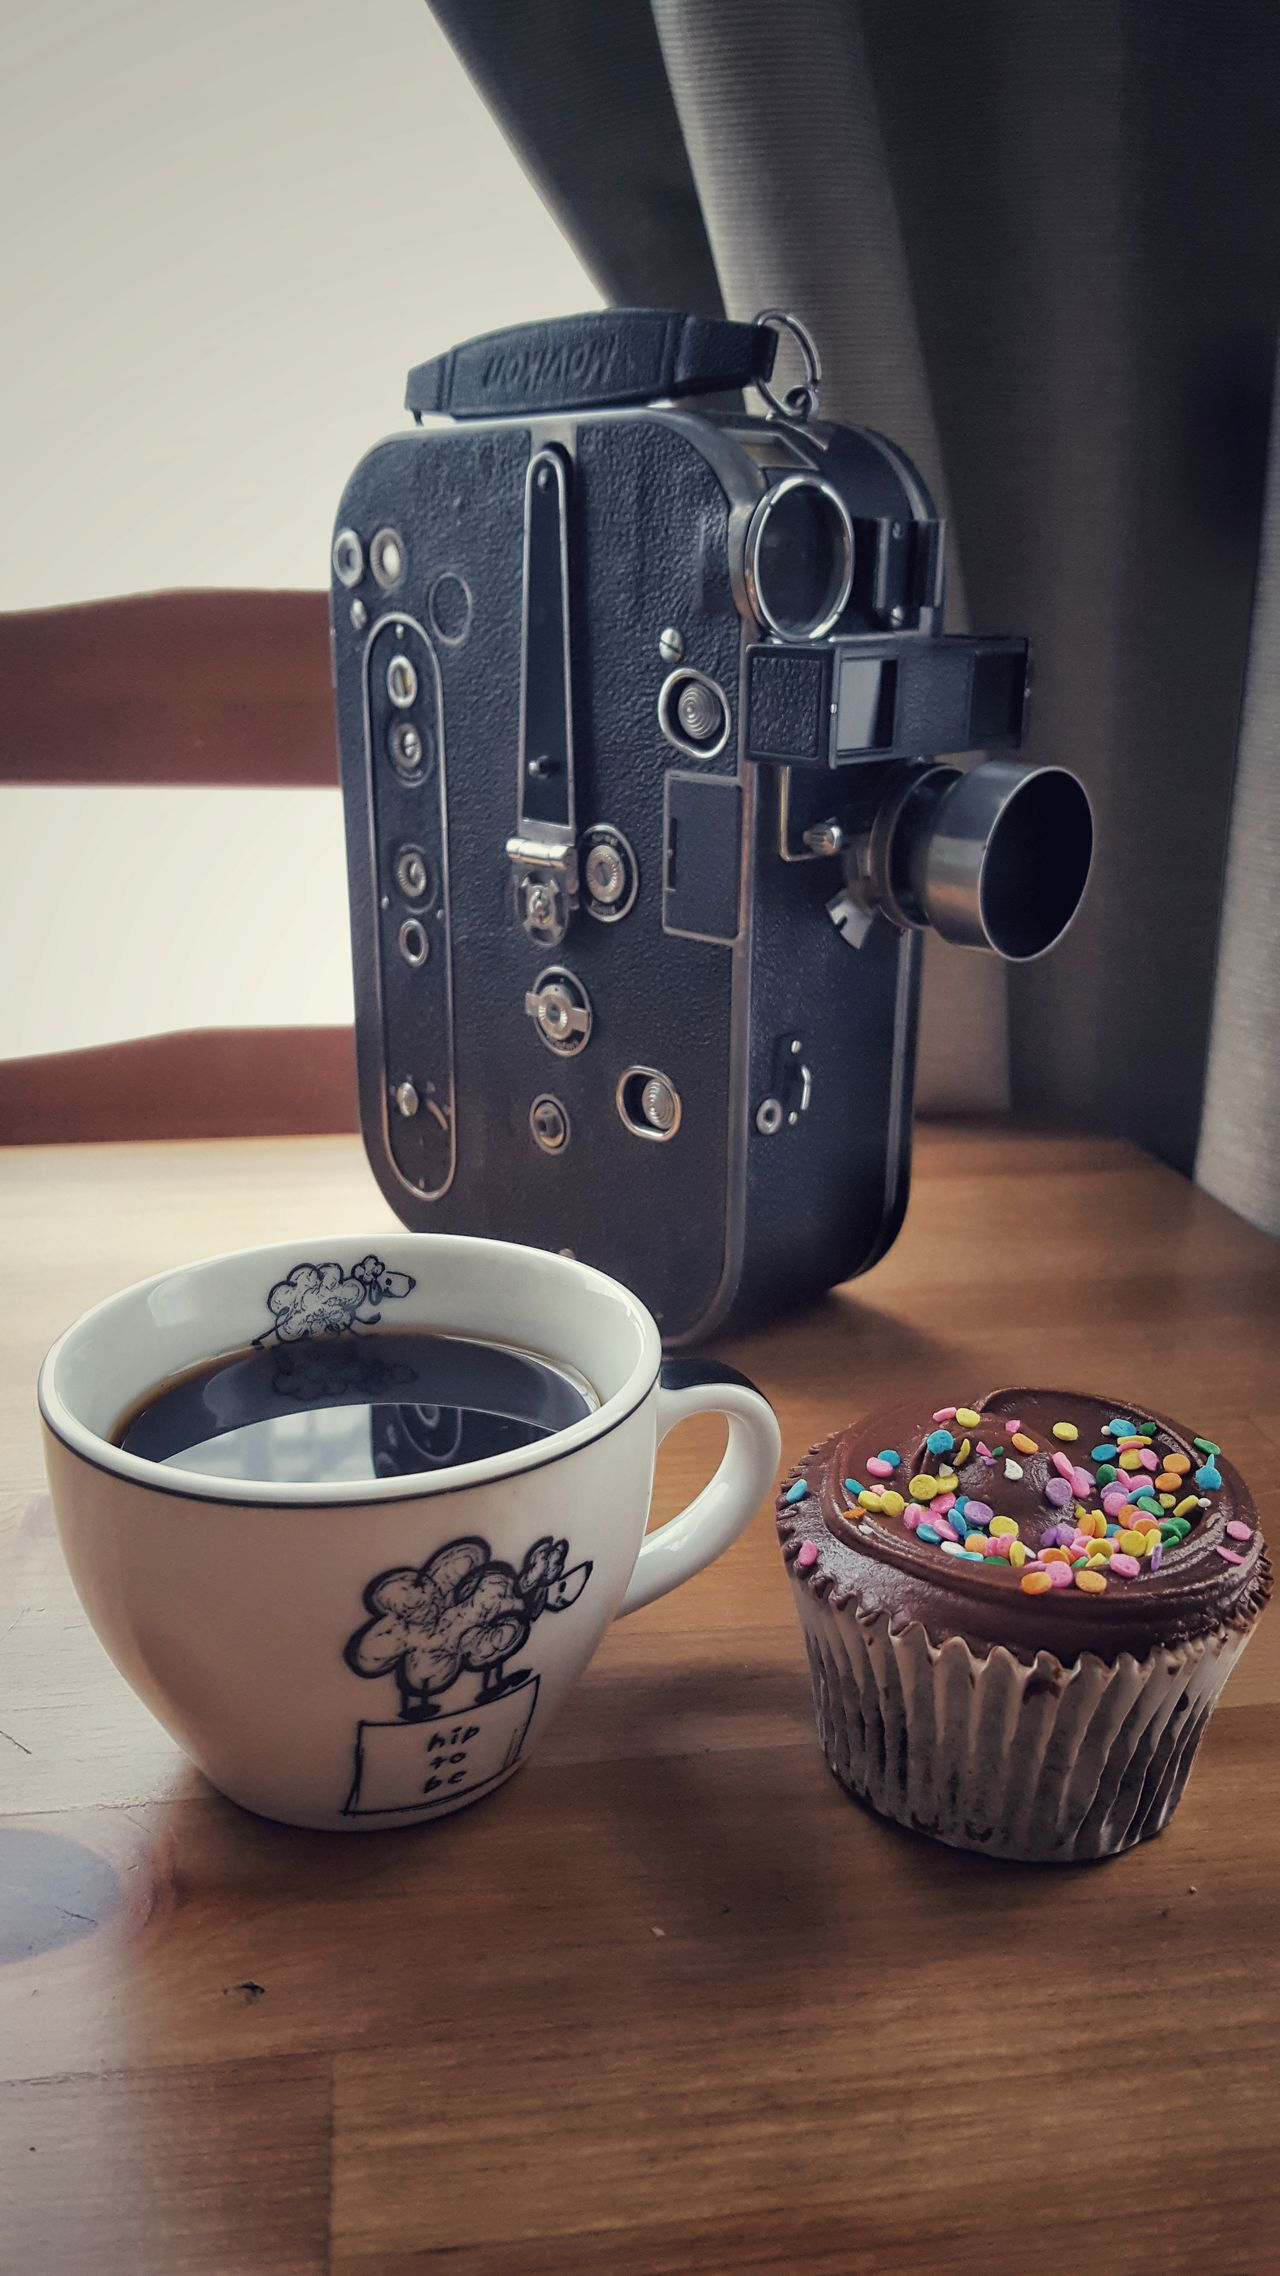 Coffee ,cupcake and Action Close-up Coffee Coffee - Drink Coffee And Sweets Coffee At Home Coffee Break Coffee Cup Coffee Time Coffee ☕ Cup Cakes Food Food And Drink Food Porn Foodporn Freshness Indoors  The Food Photographer Retro Retro Style Retro Styled Still Life Sweet Sweet Food Vintage EyeEm Selects